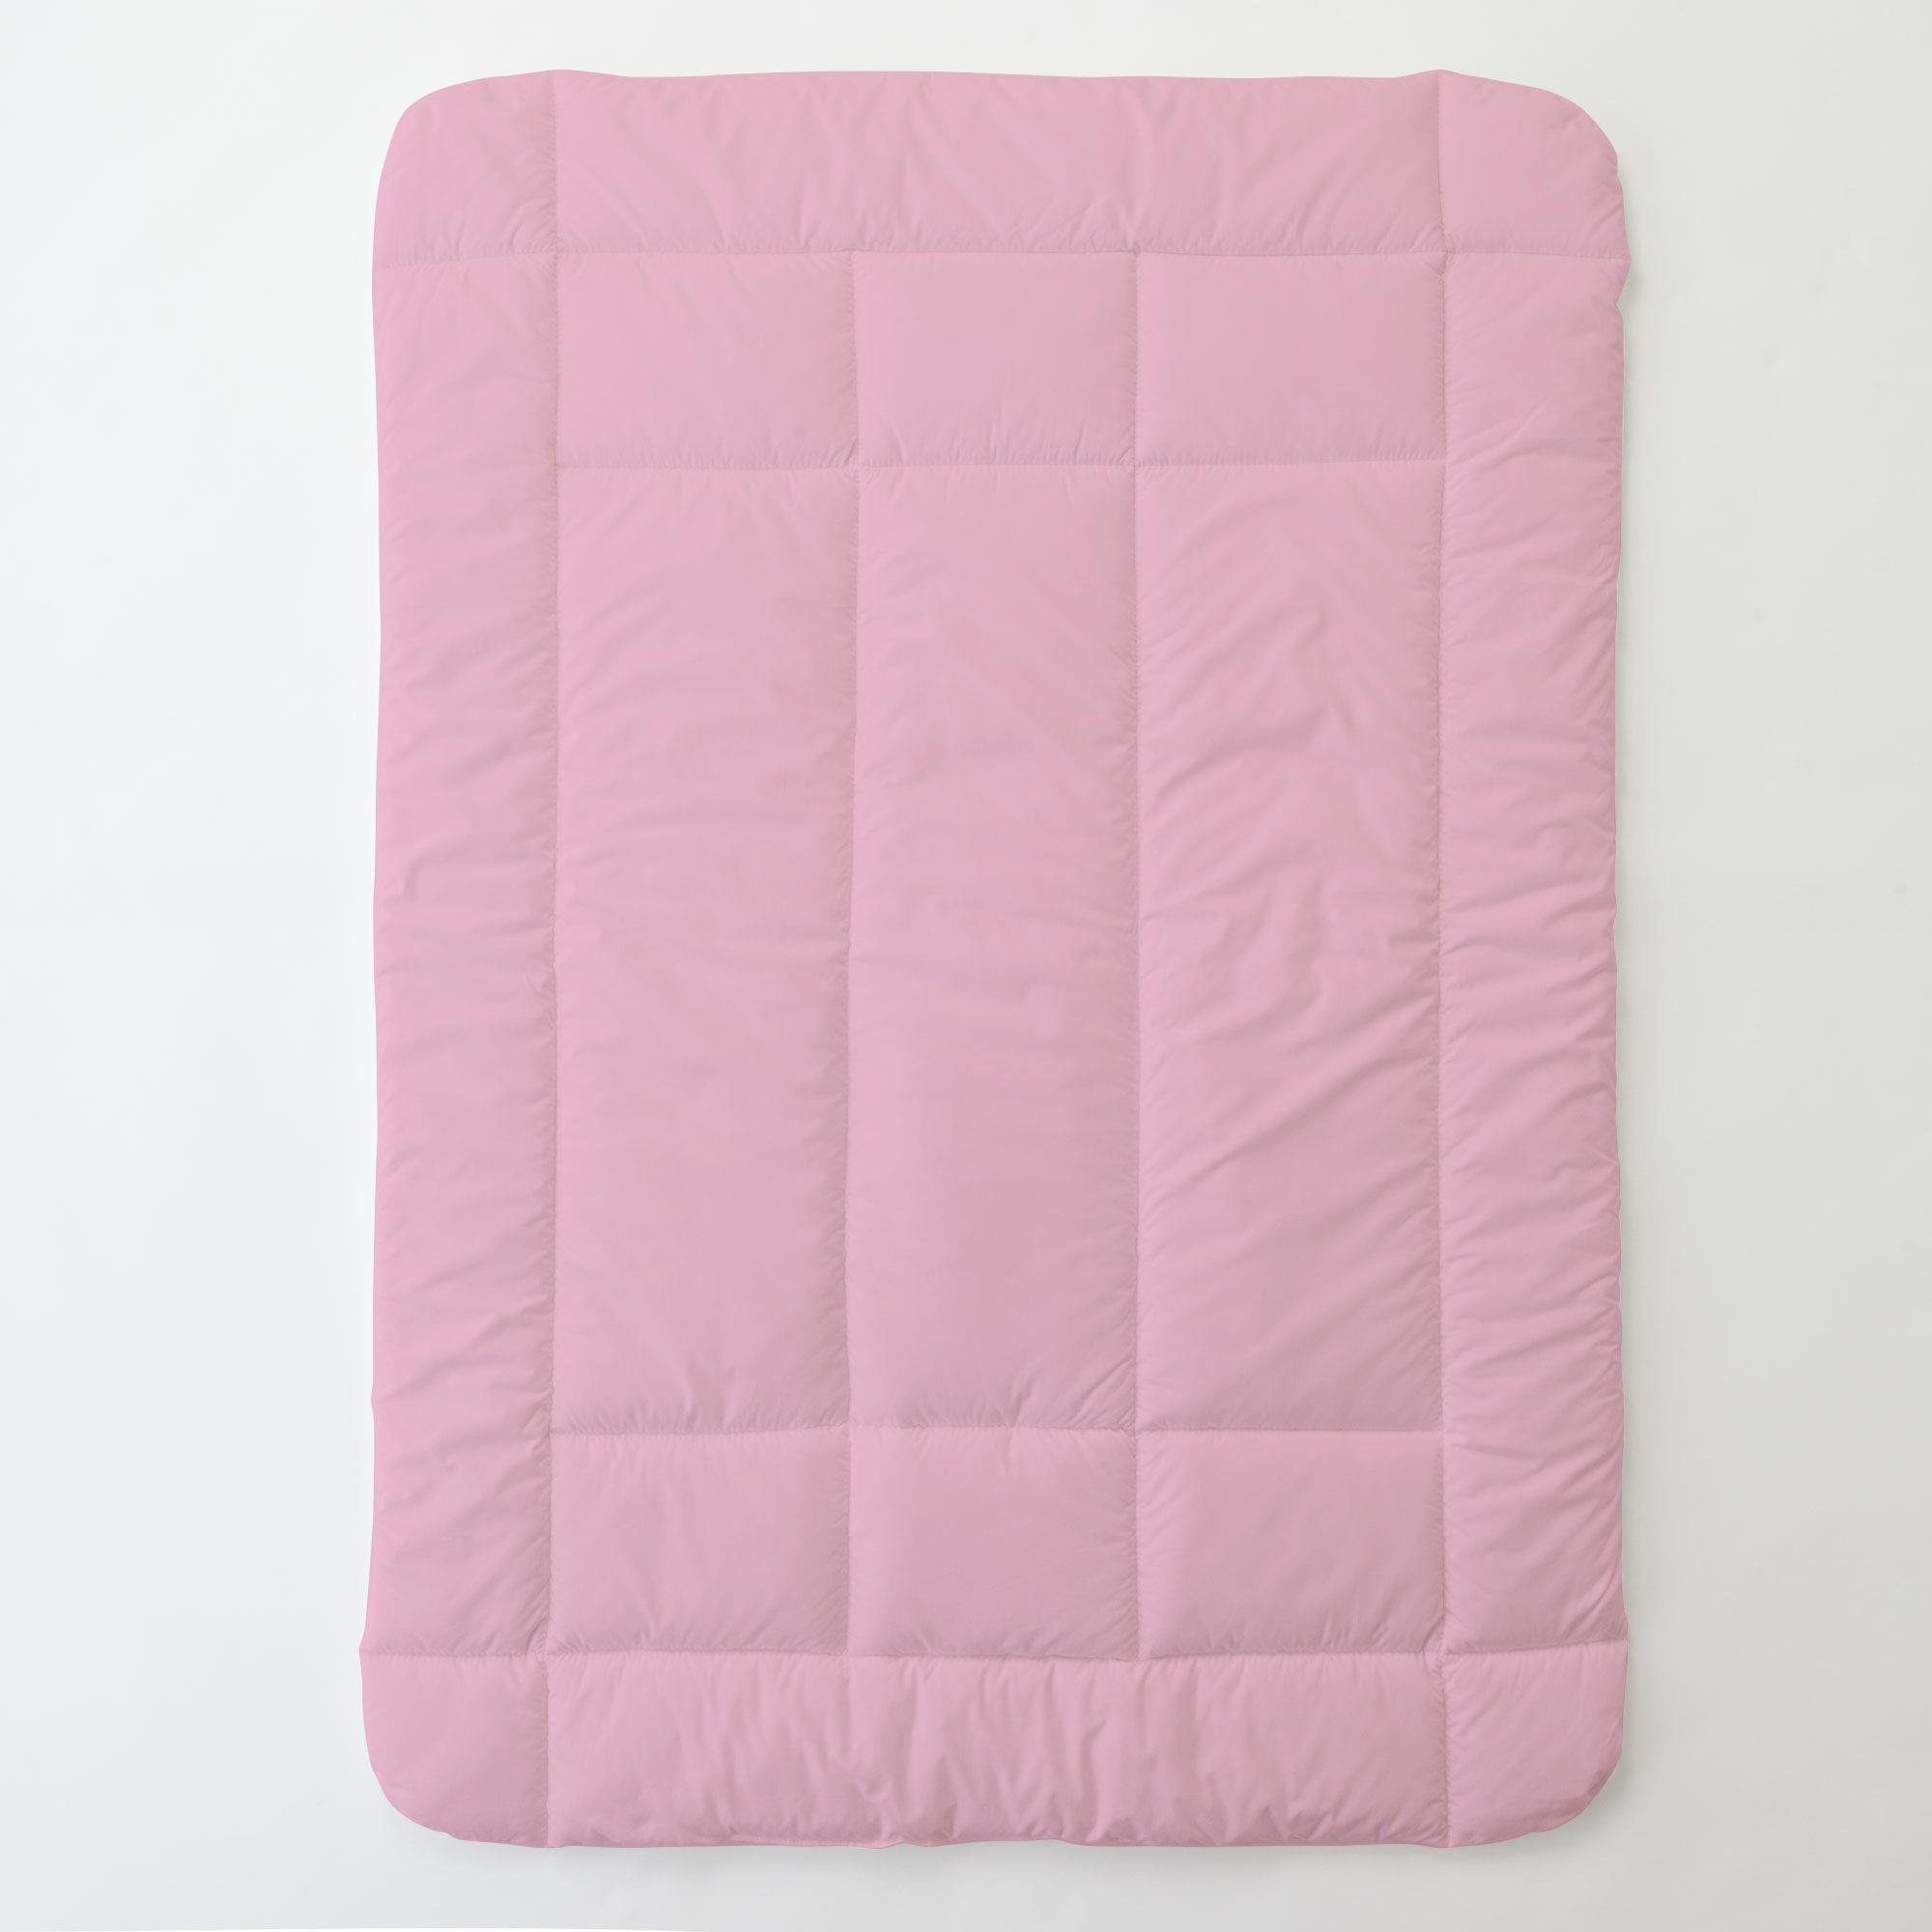 Carousel Designs Solid Color Bubblegum Pink Toddler Bed Comforter by Carousel Designs